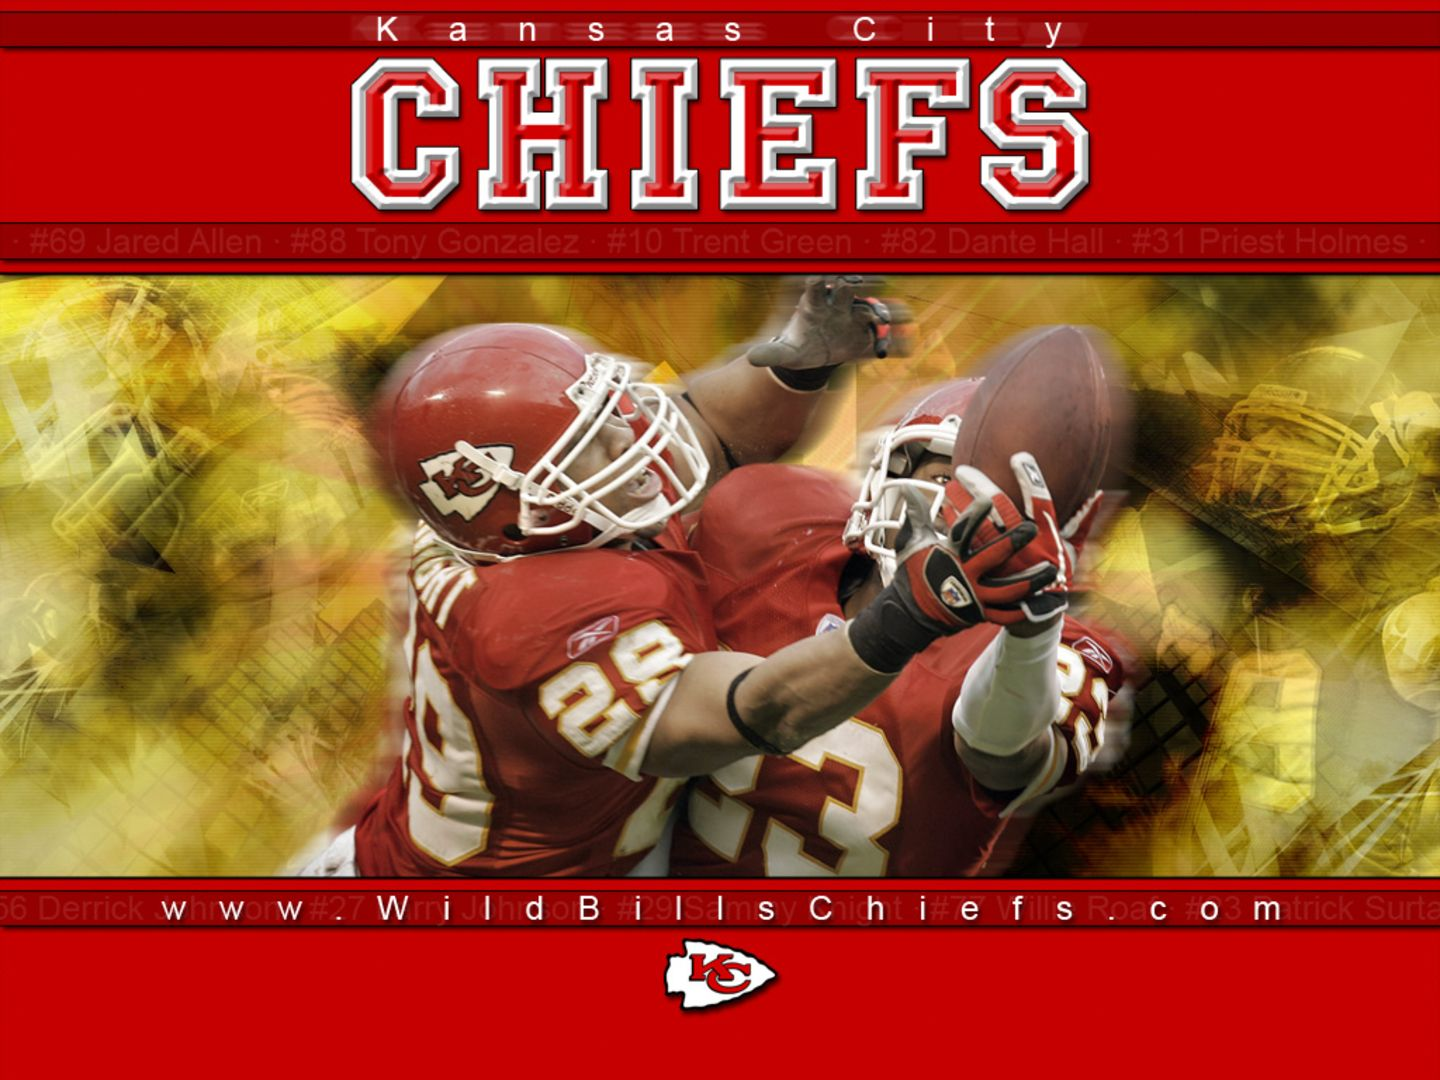 Kansas City Chiefs Nfl Hd Desktop Wallpaper Instagram Photo Background Image Chiefs Wallpaper Kansas City Chiefs Kc Chiefs